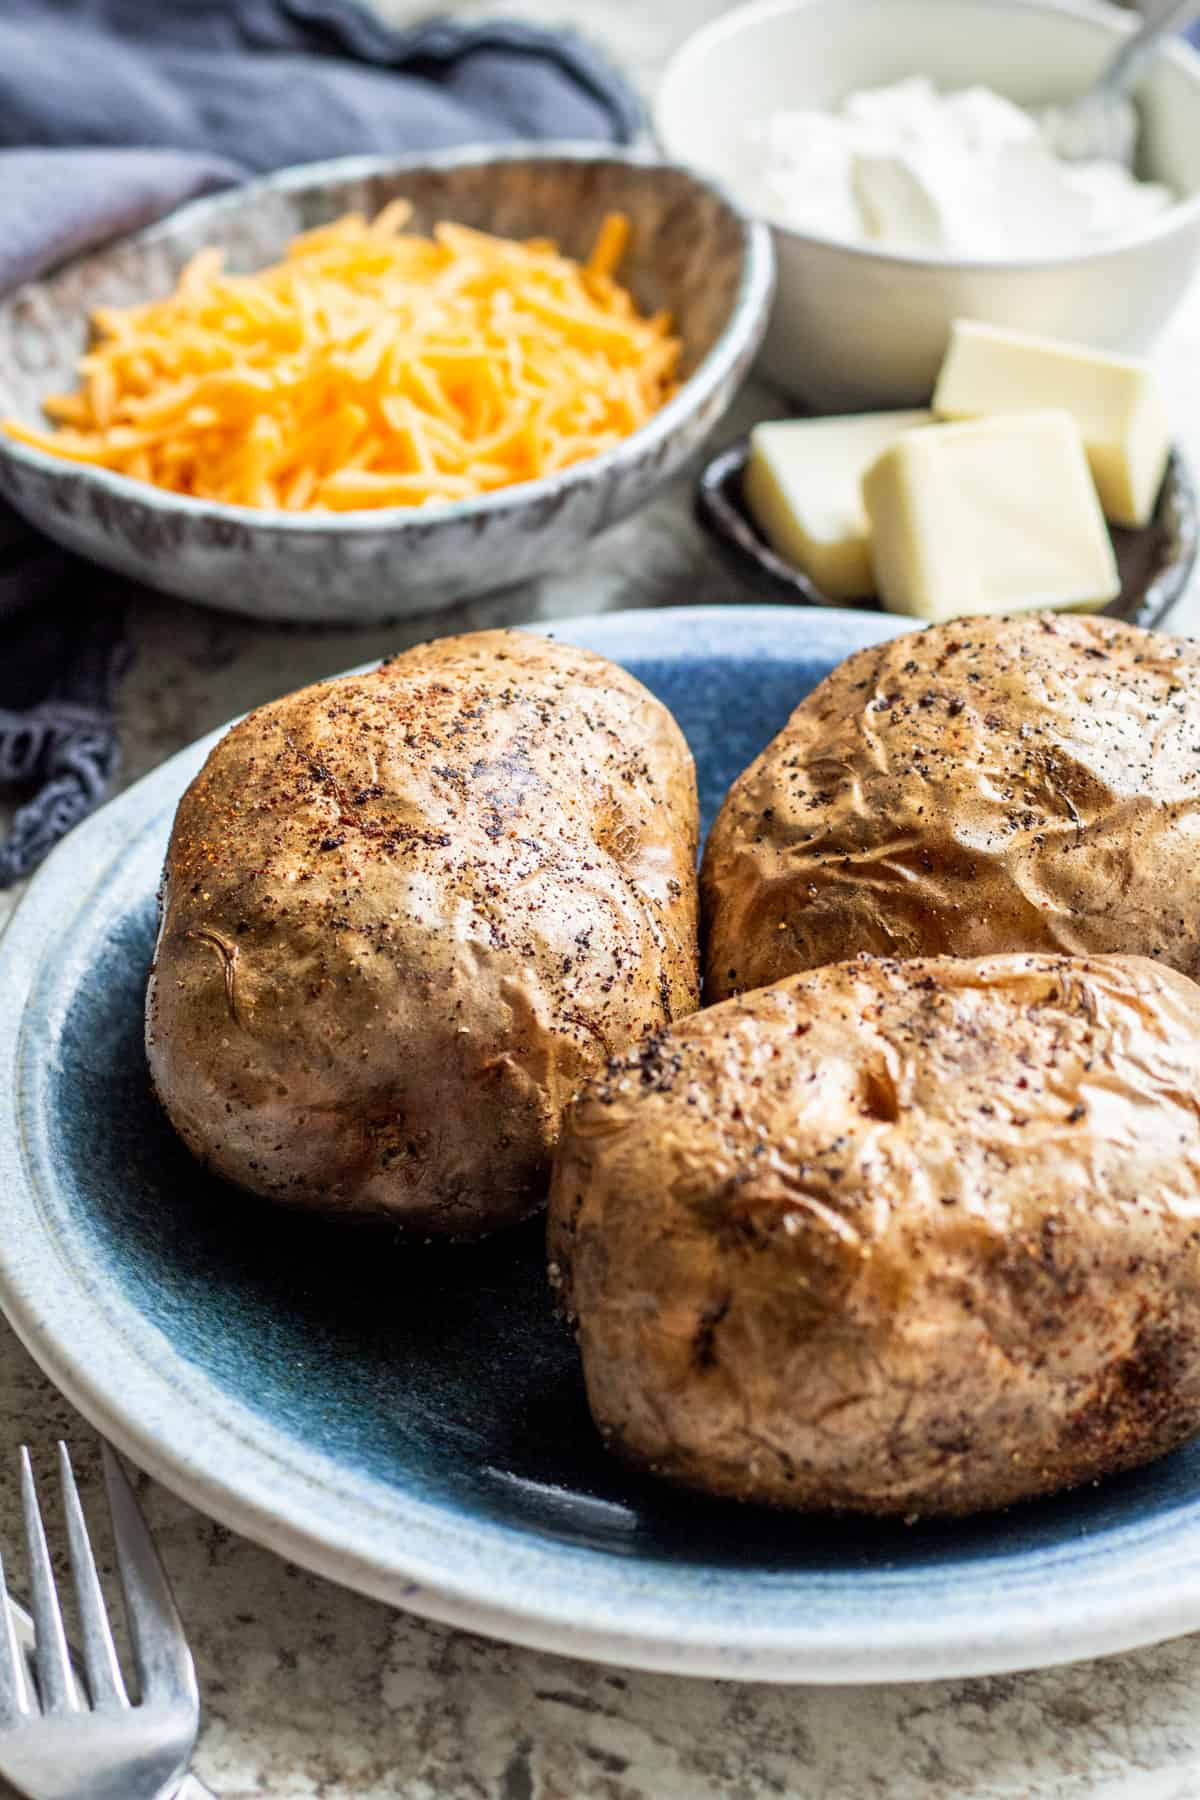 Baked potatoes on a blue plate with toppings in background.